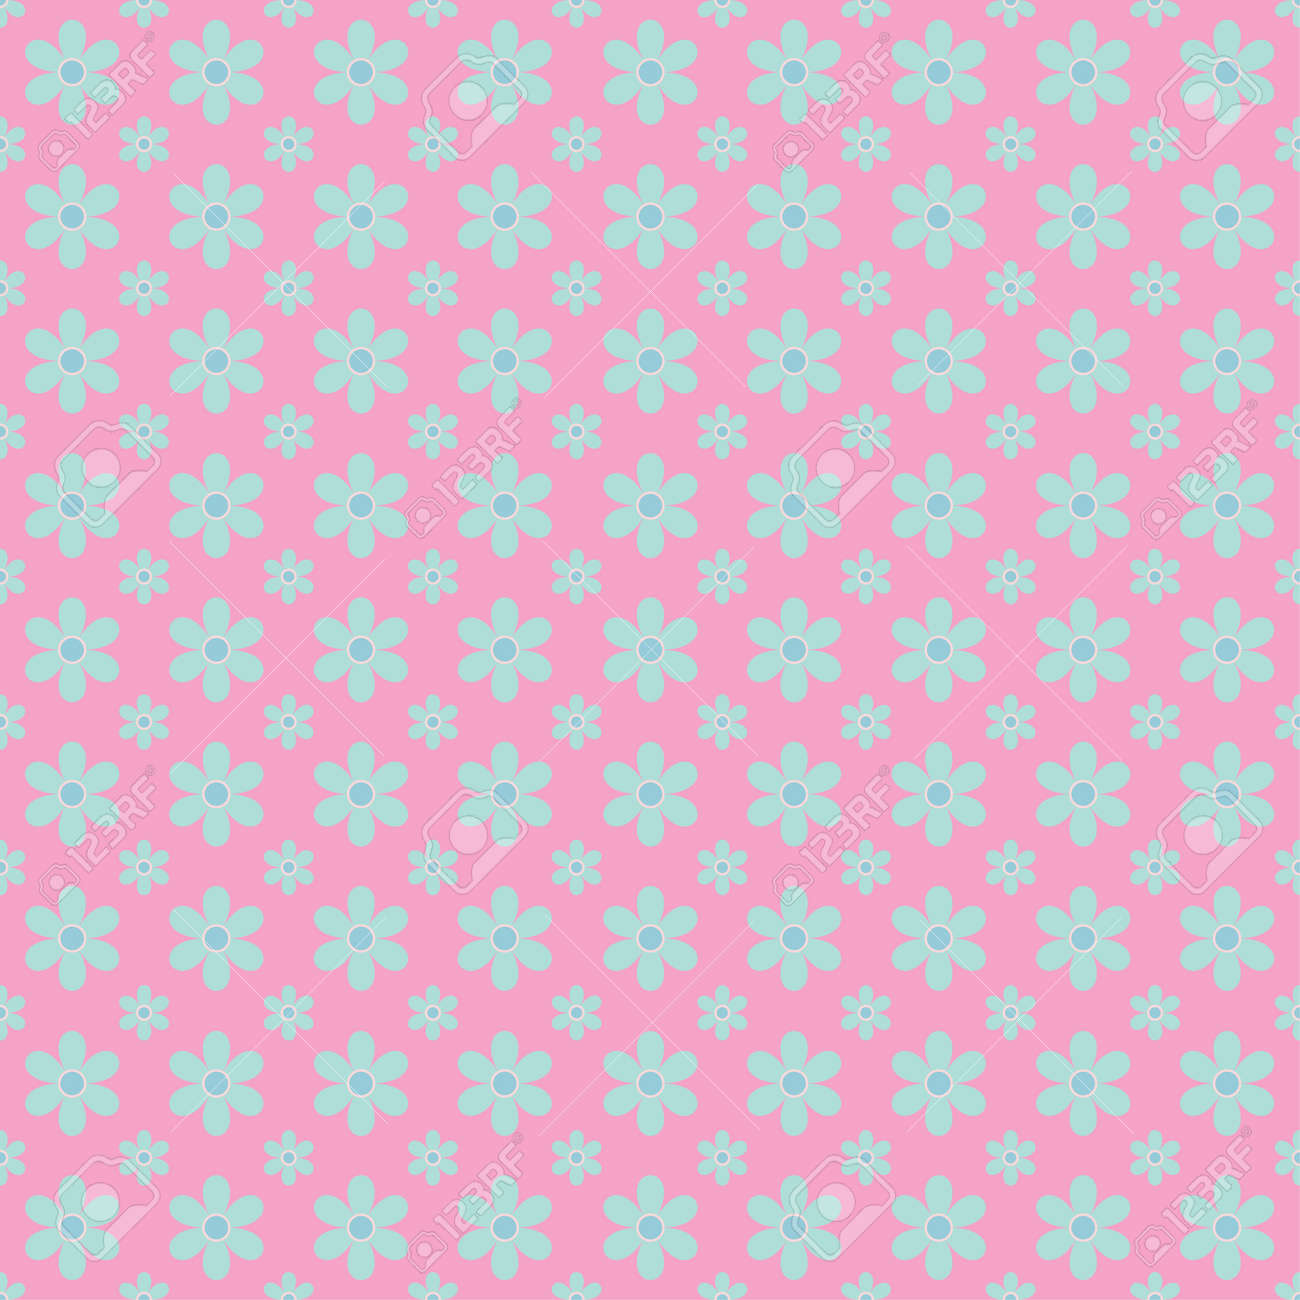 Pink Floral Background For Cards Wrapping Web Page Backgrounds